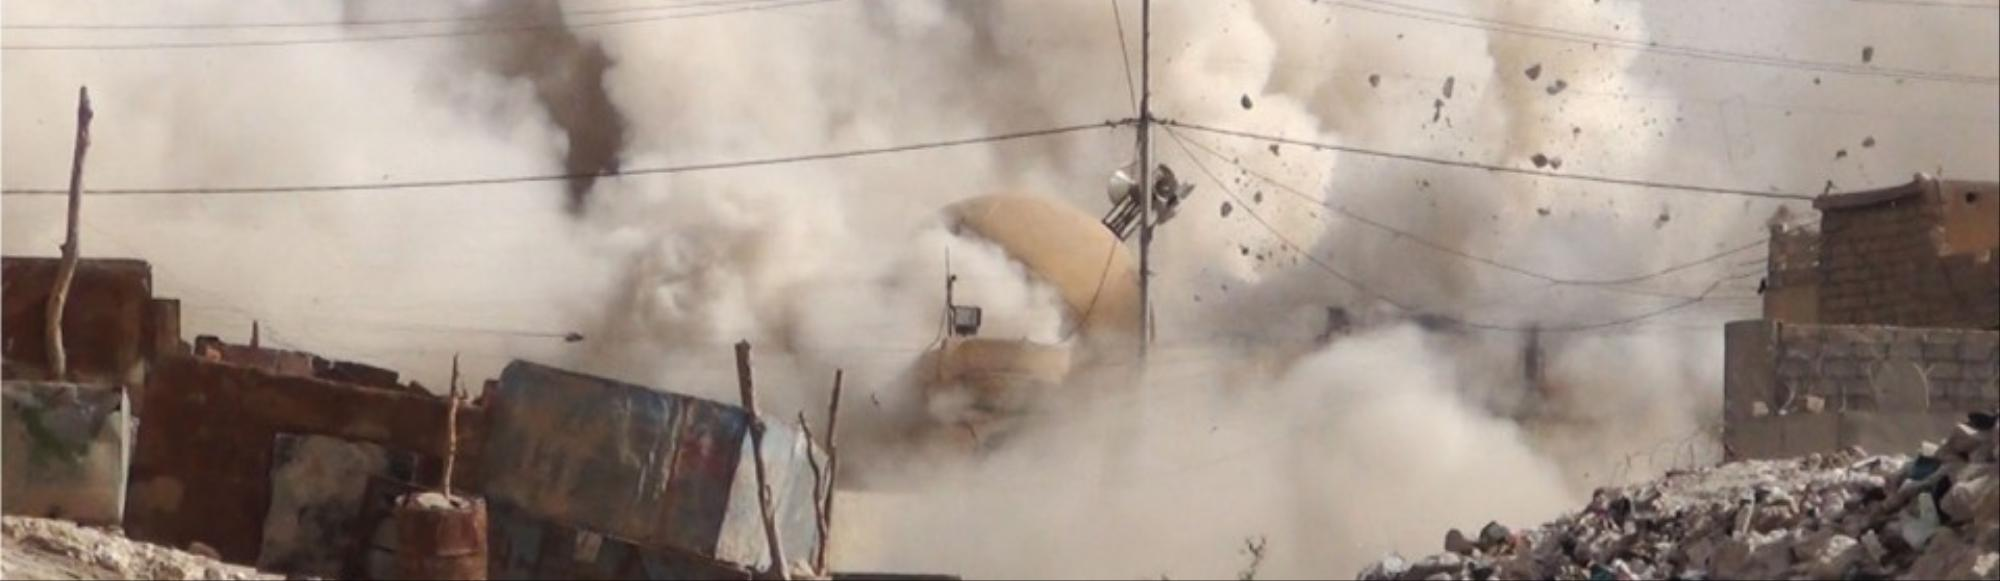 Video of the Islamic State Obliterating the Tomb of Jonah Emerges